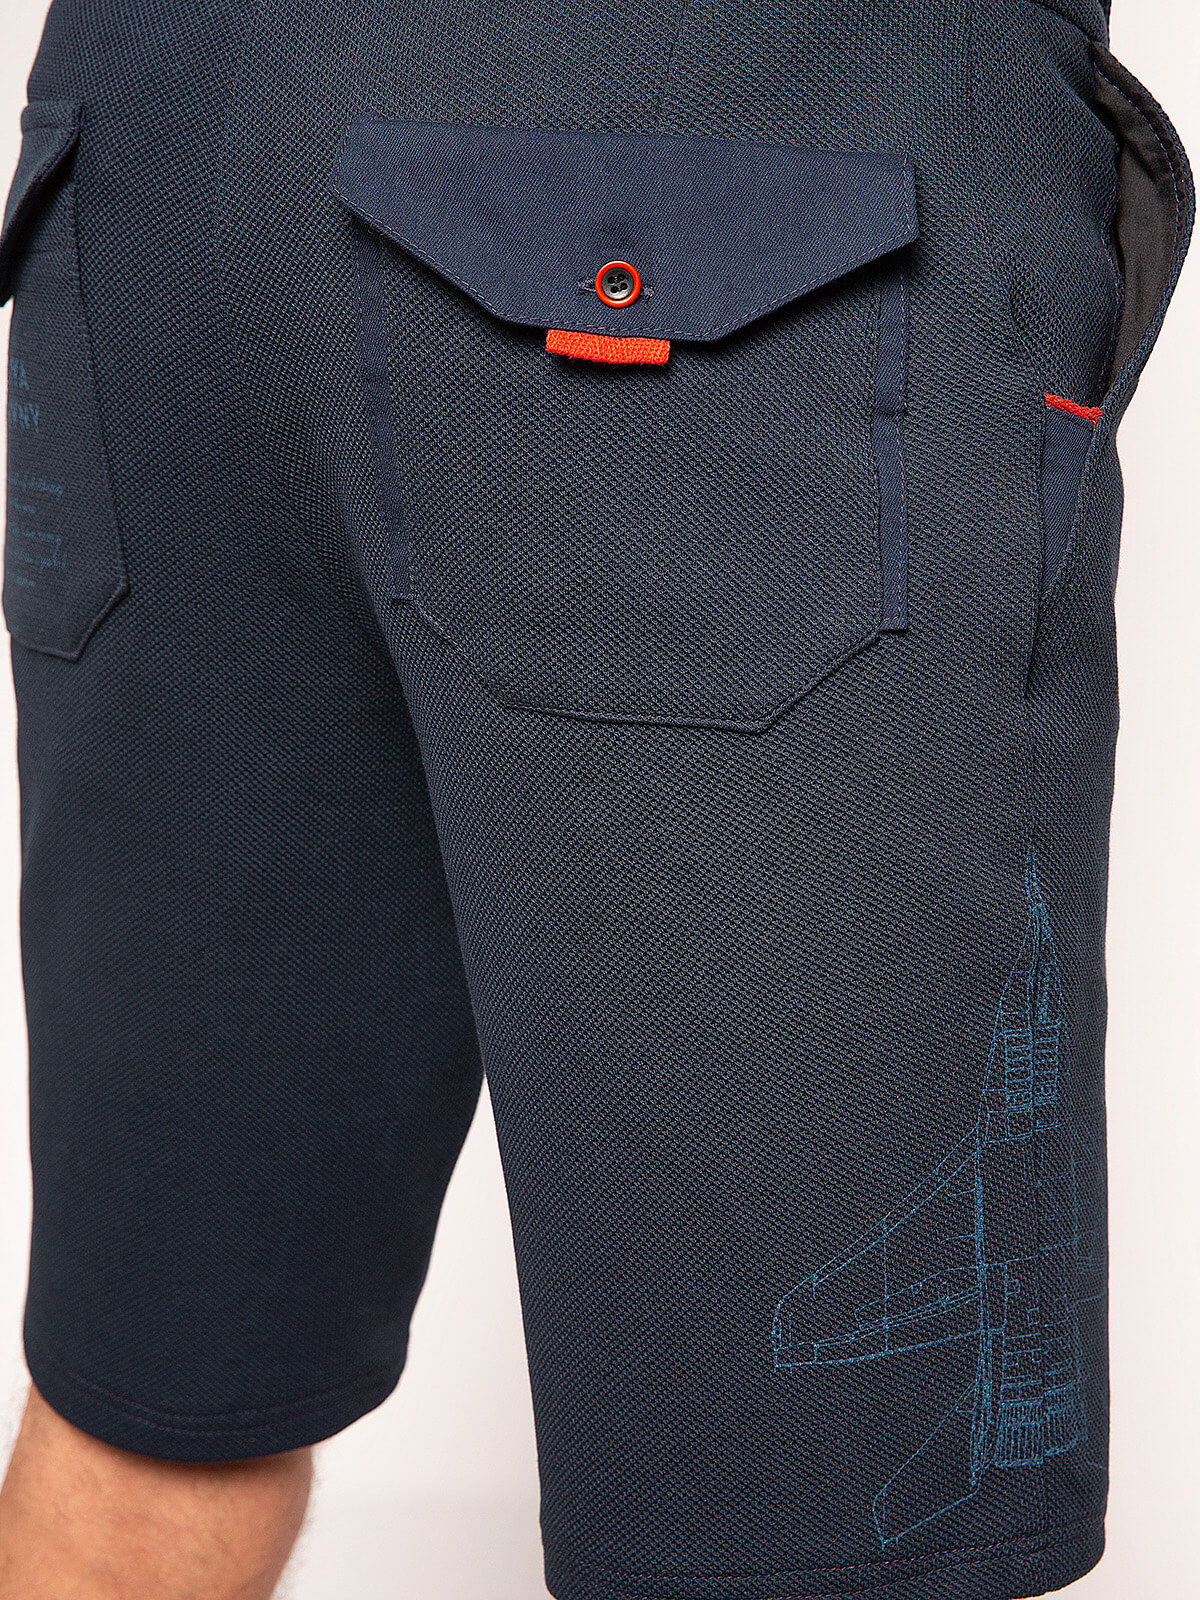 Men's Shorts Mig-29. Color dark blue.  Height of the model: 180cm.